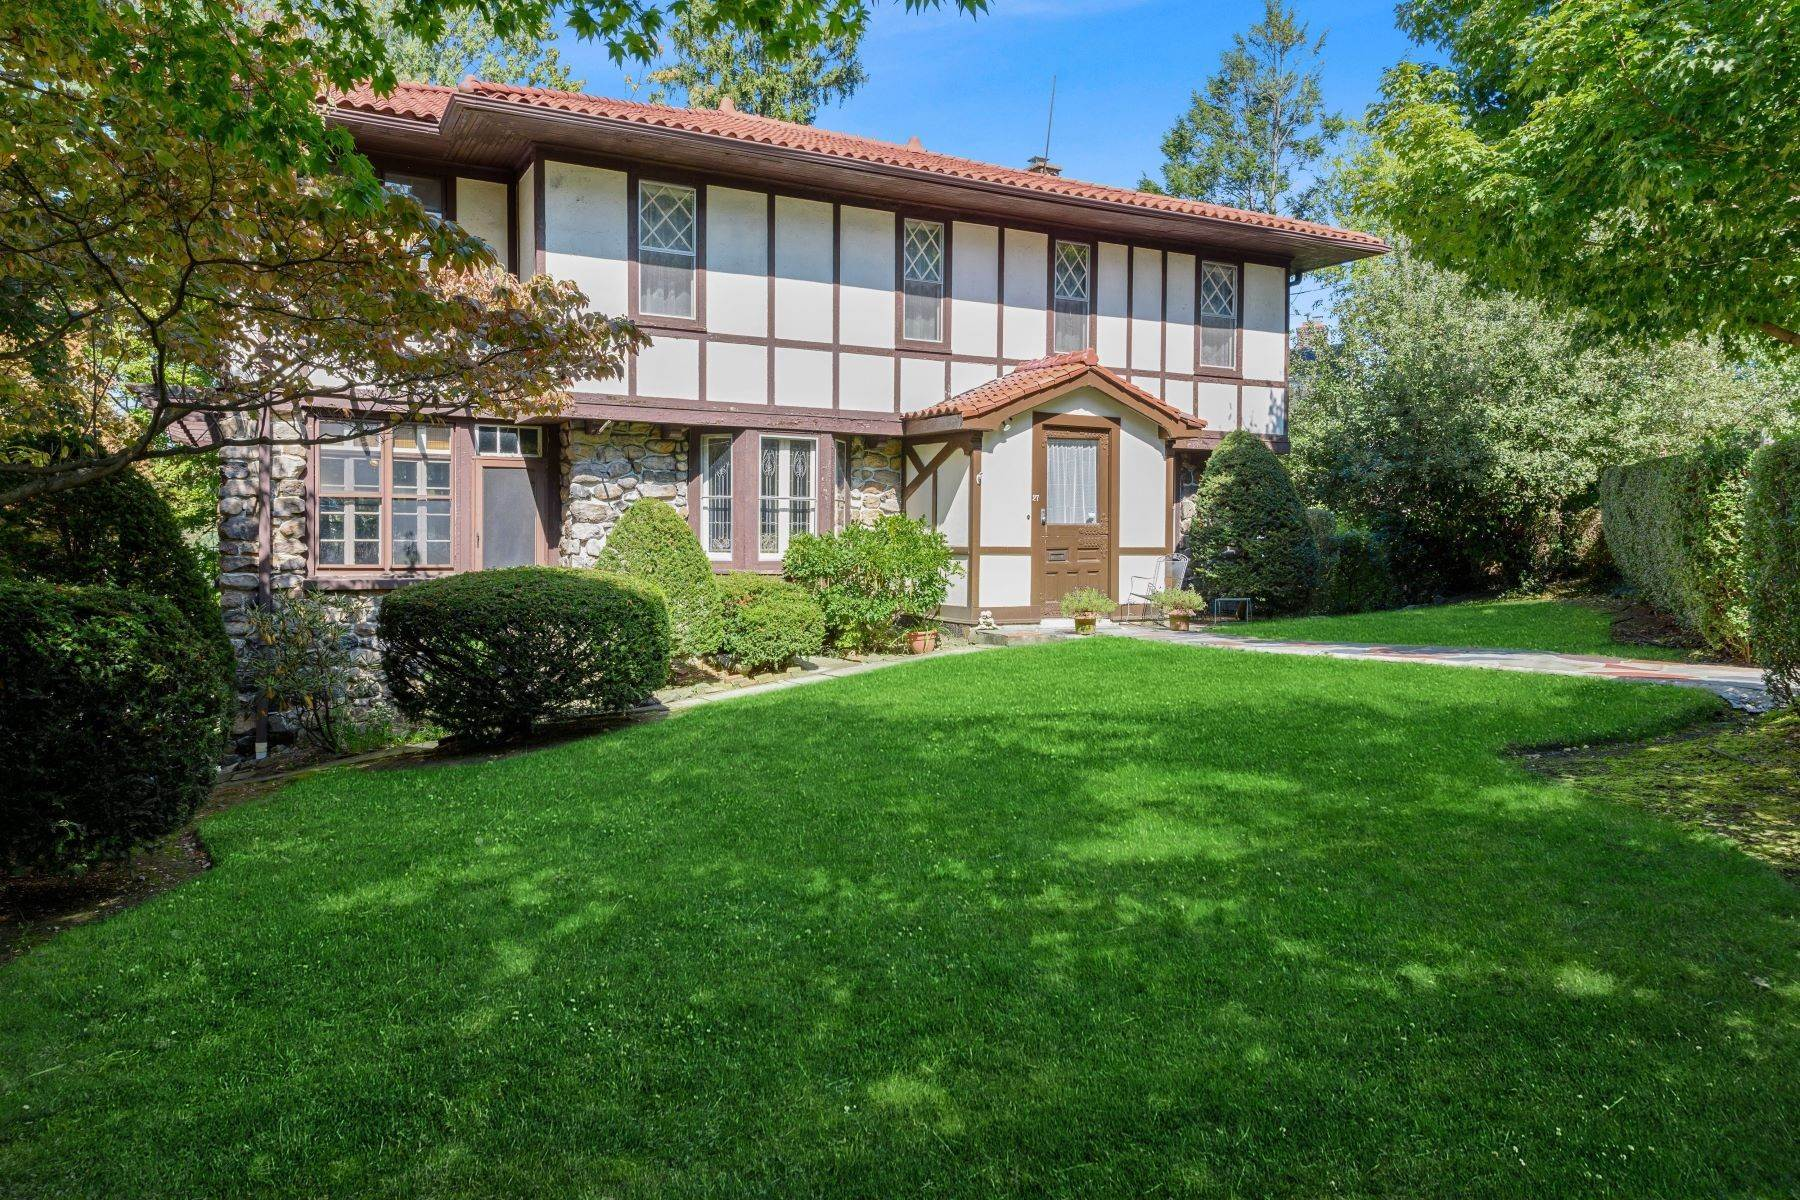 Single Family Homes for Sale at 15 Aka 27 Chatfield Road Bronxville, New York 10708 United States